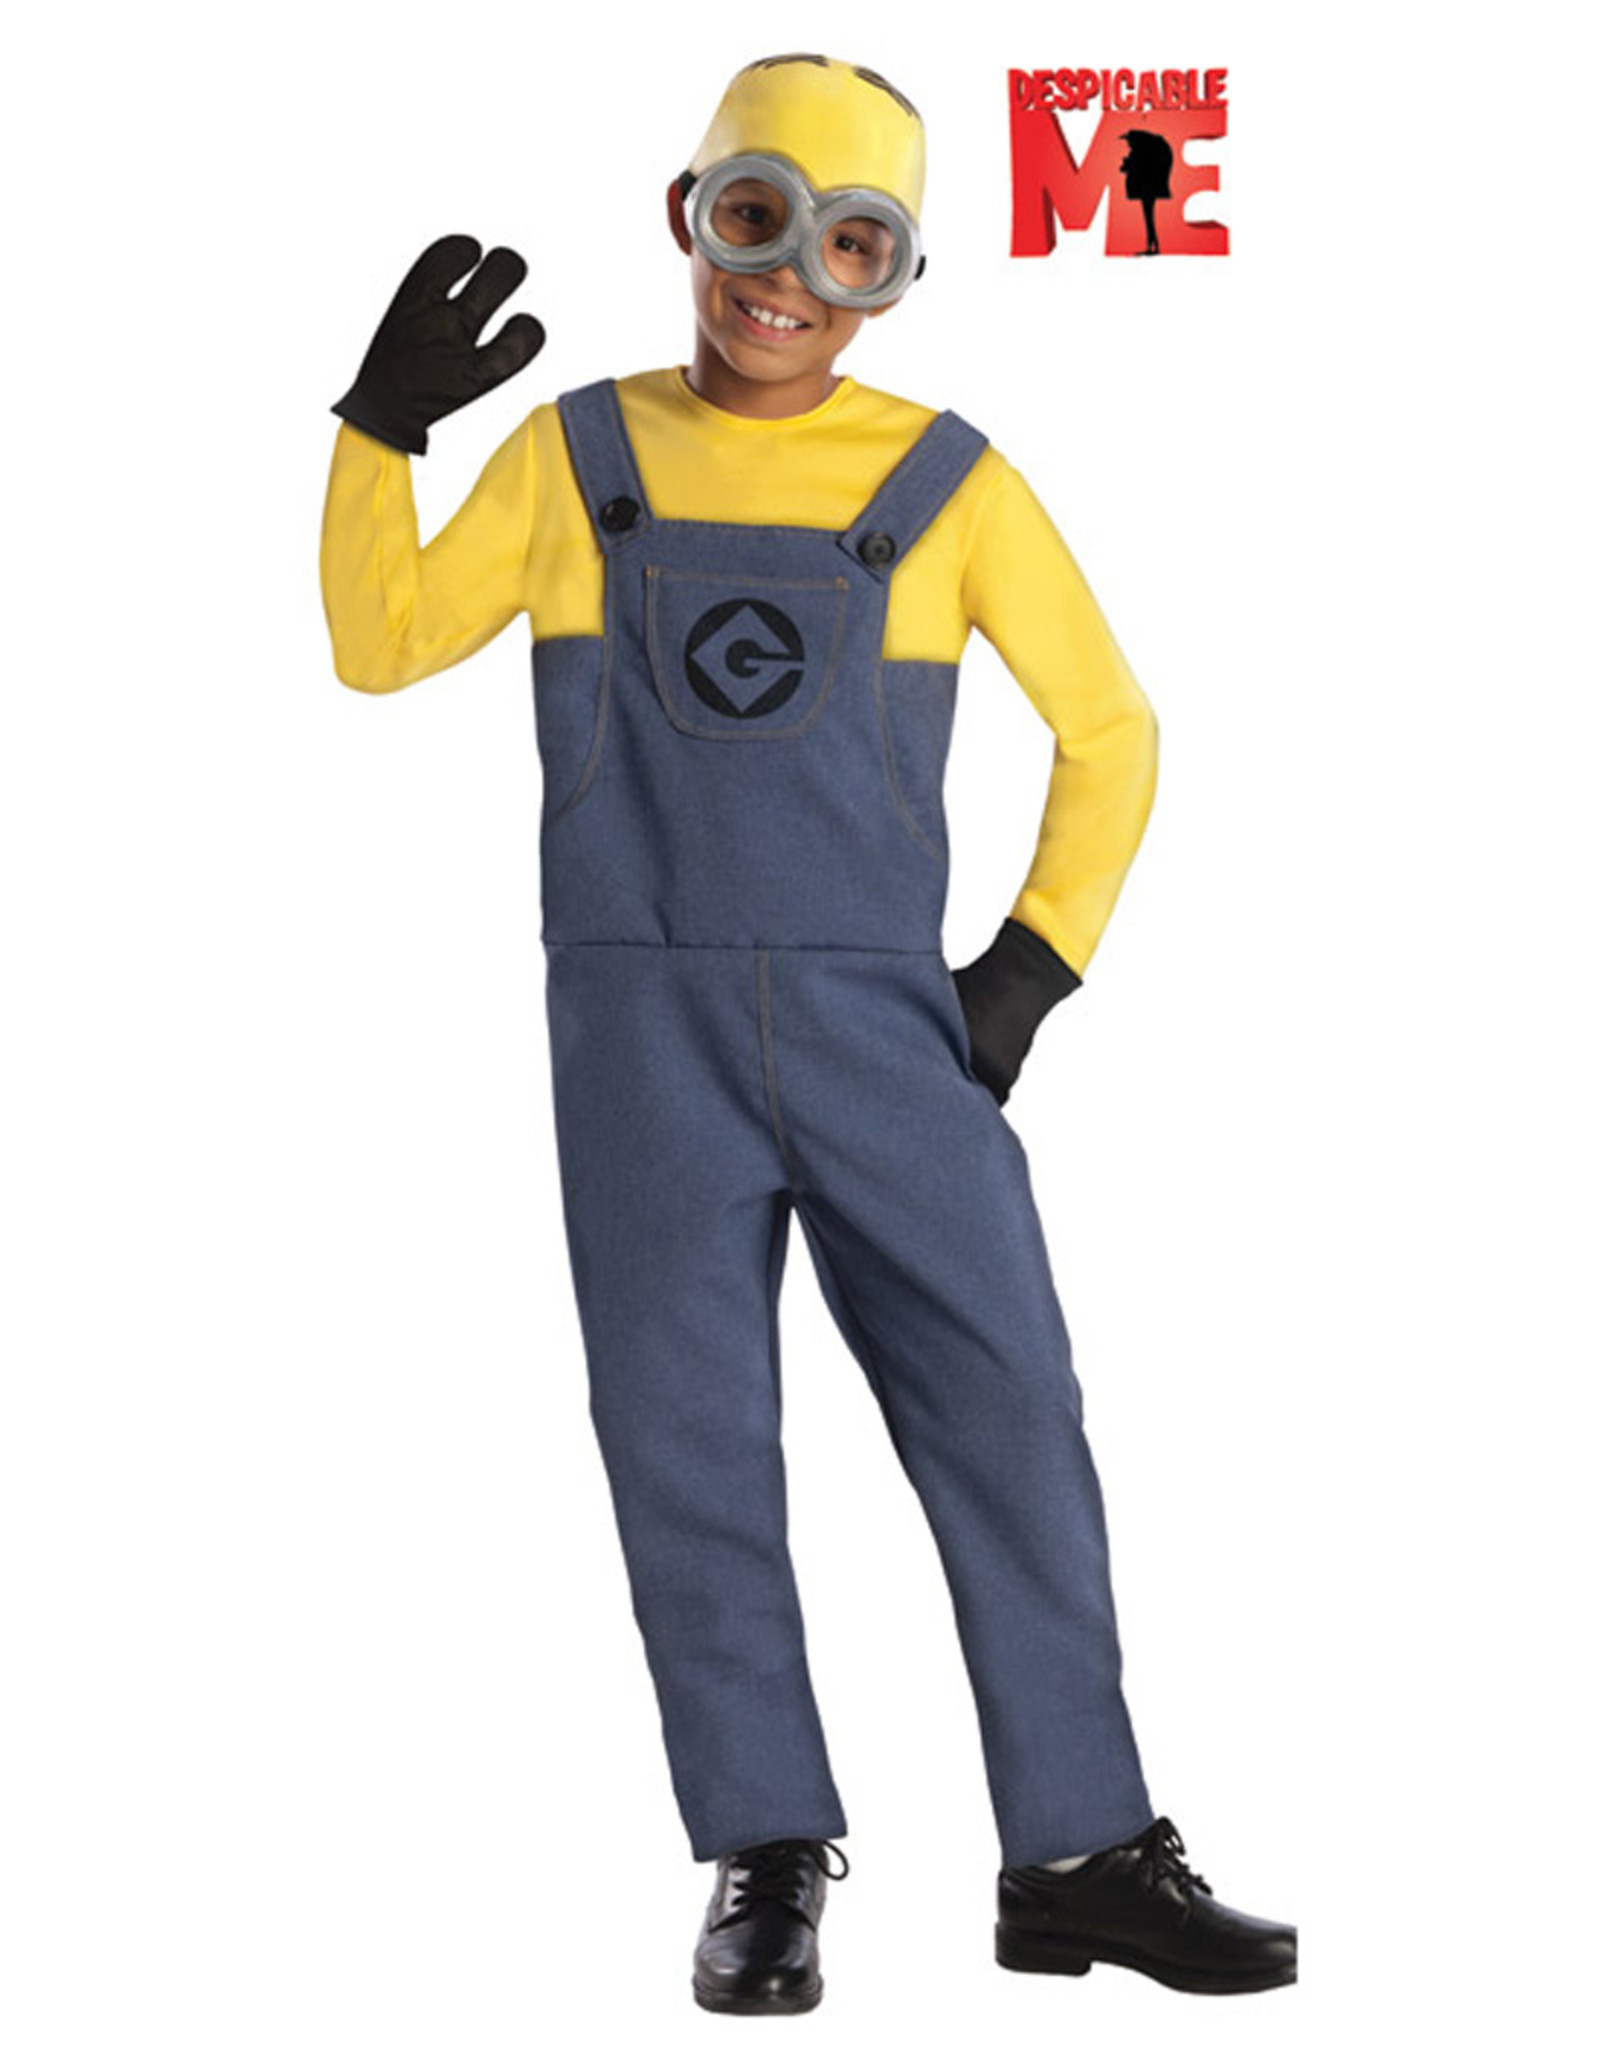 Minion Dave Costume - Boys